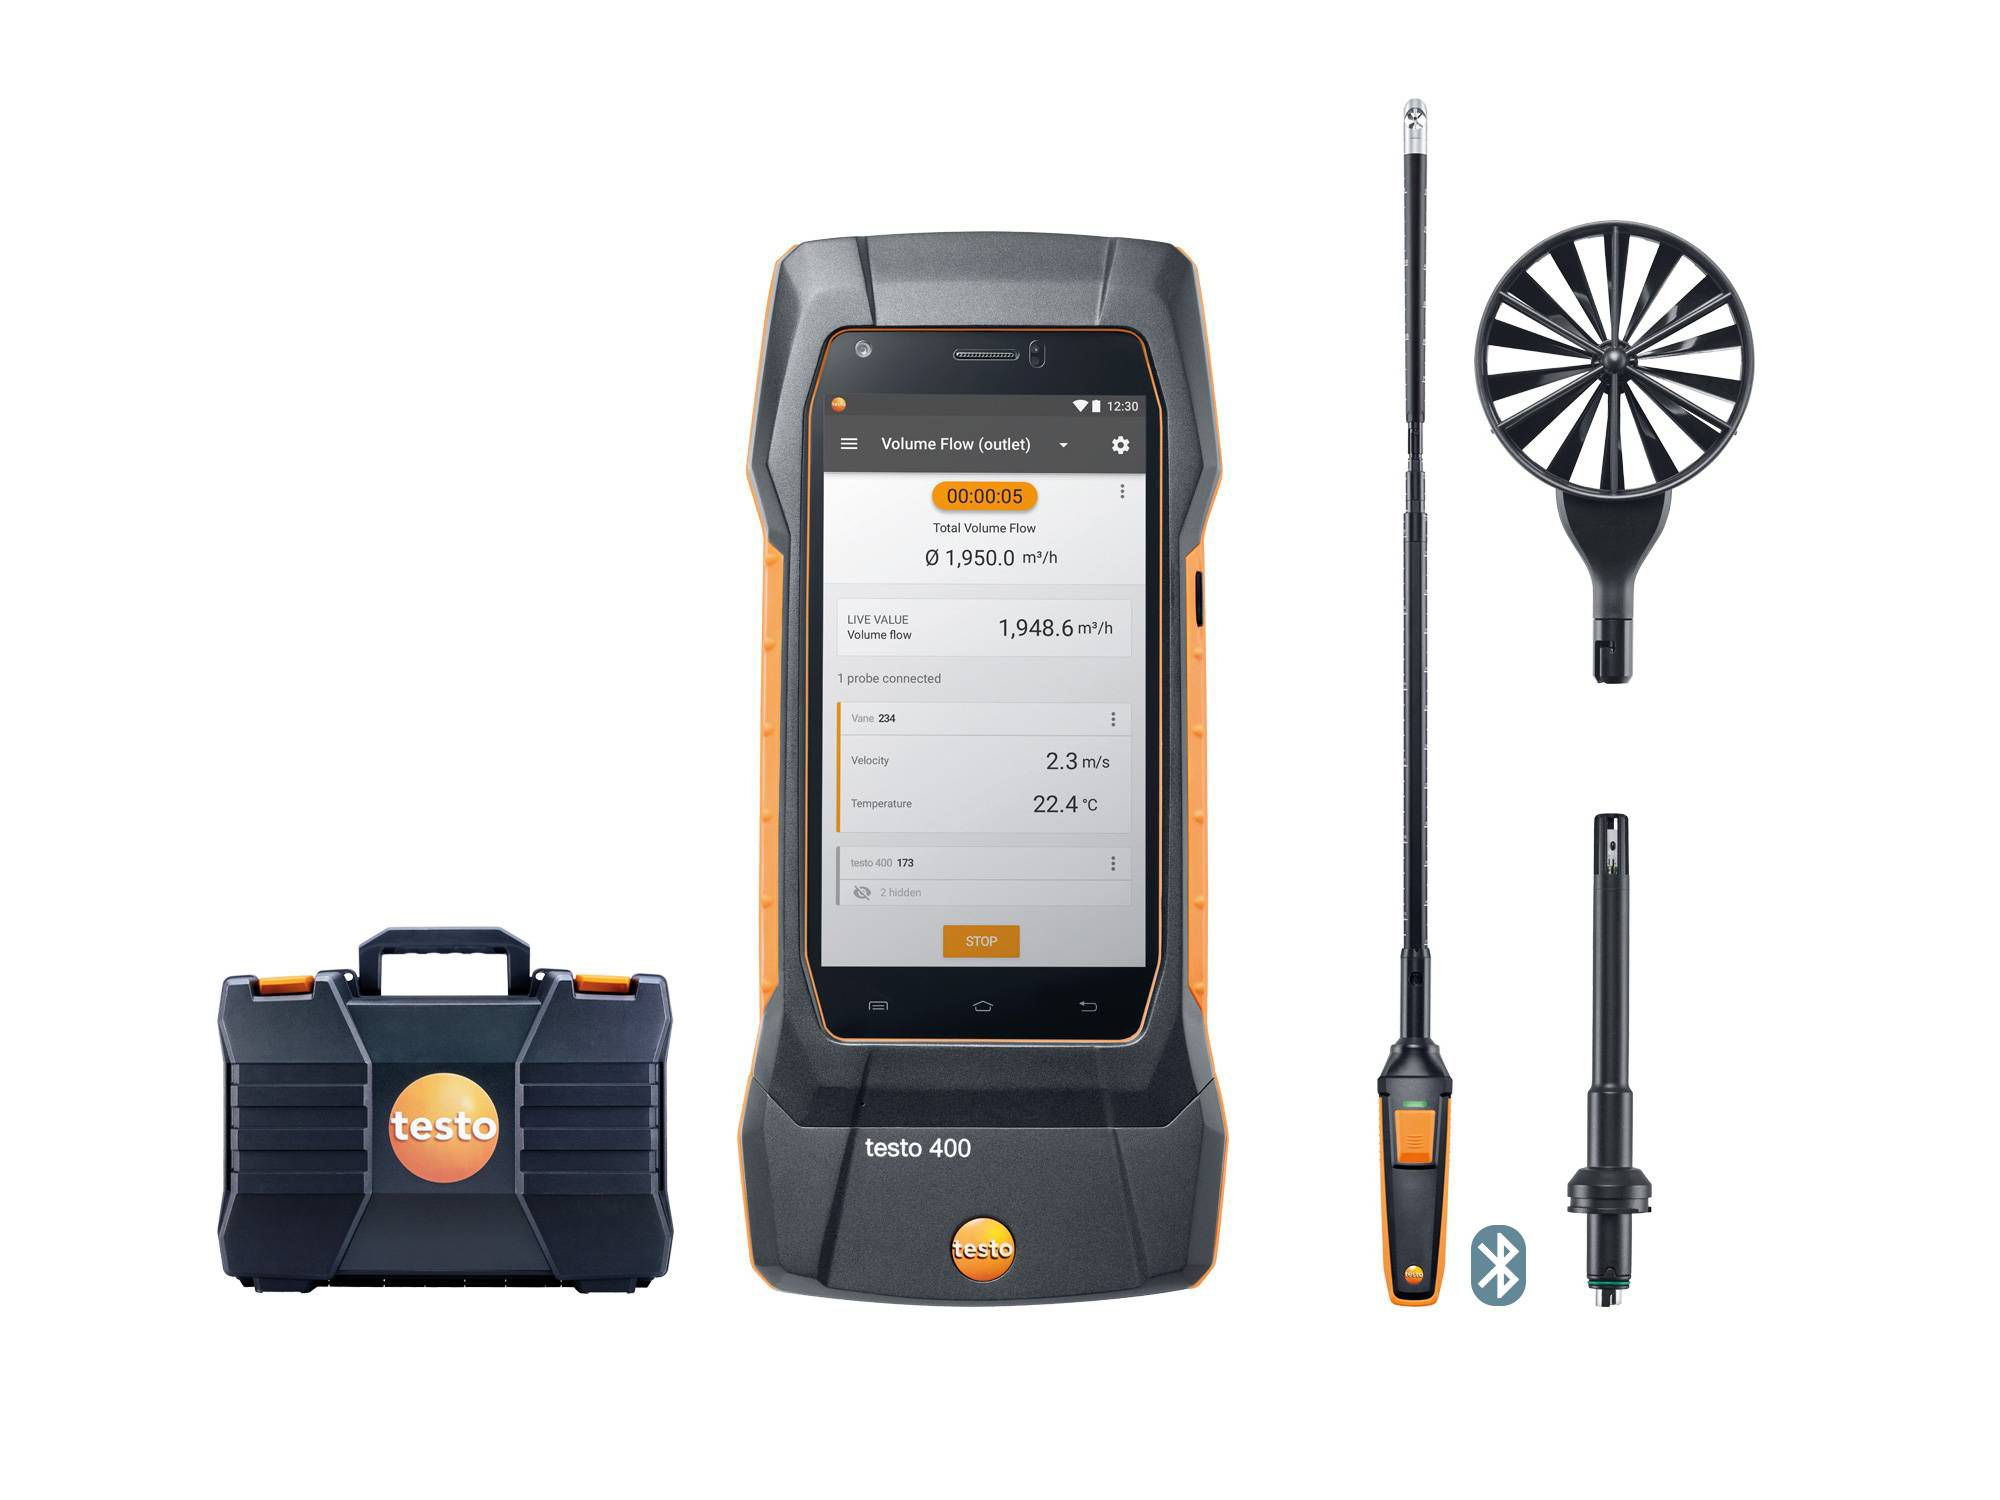 testo 400 German Design Award